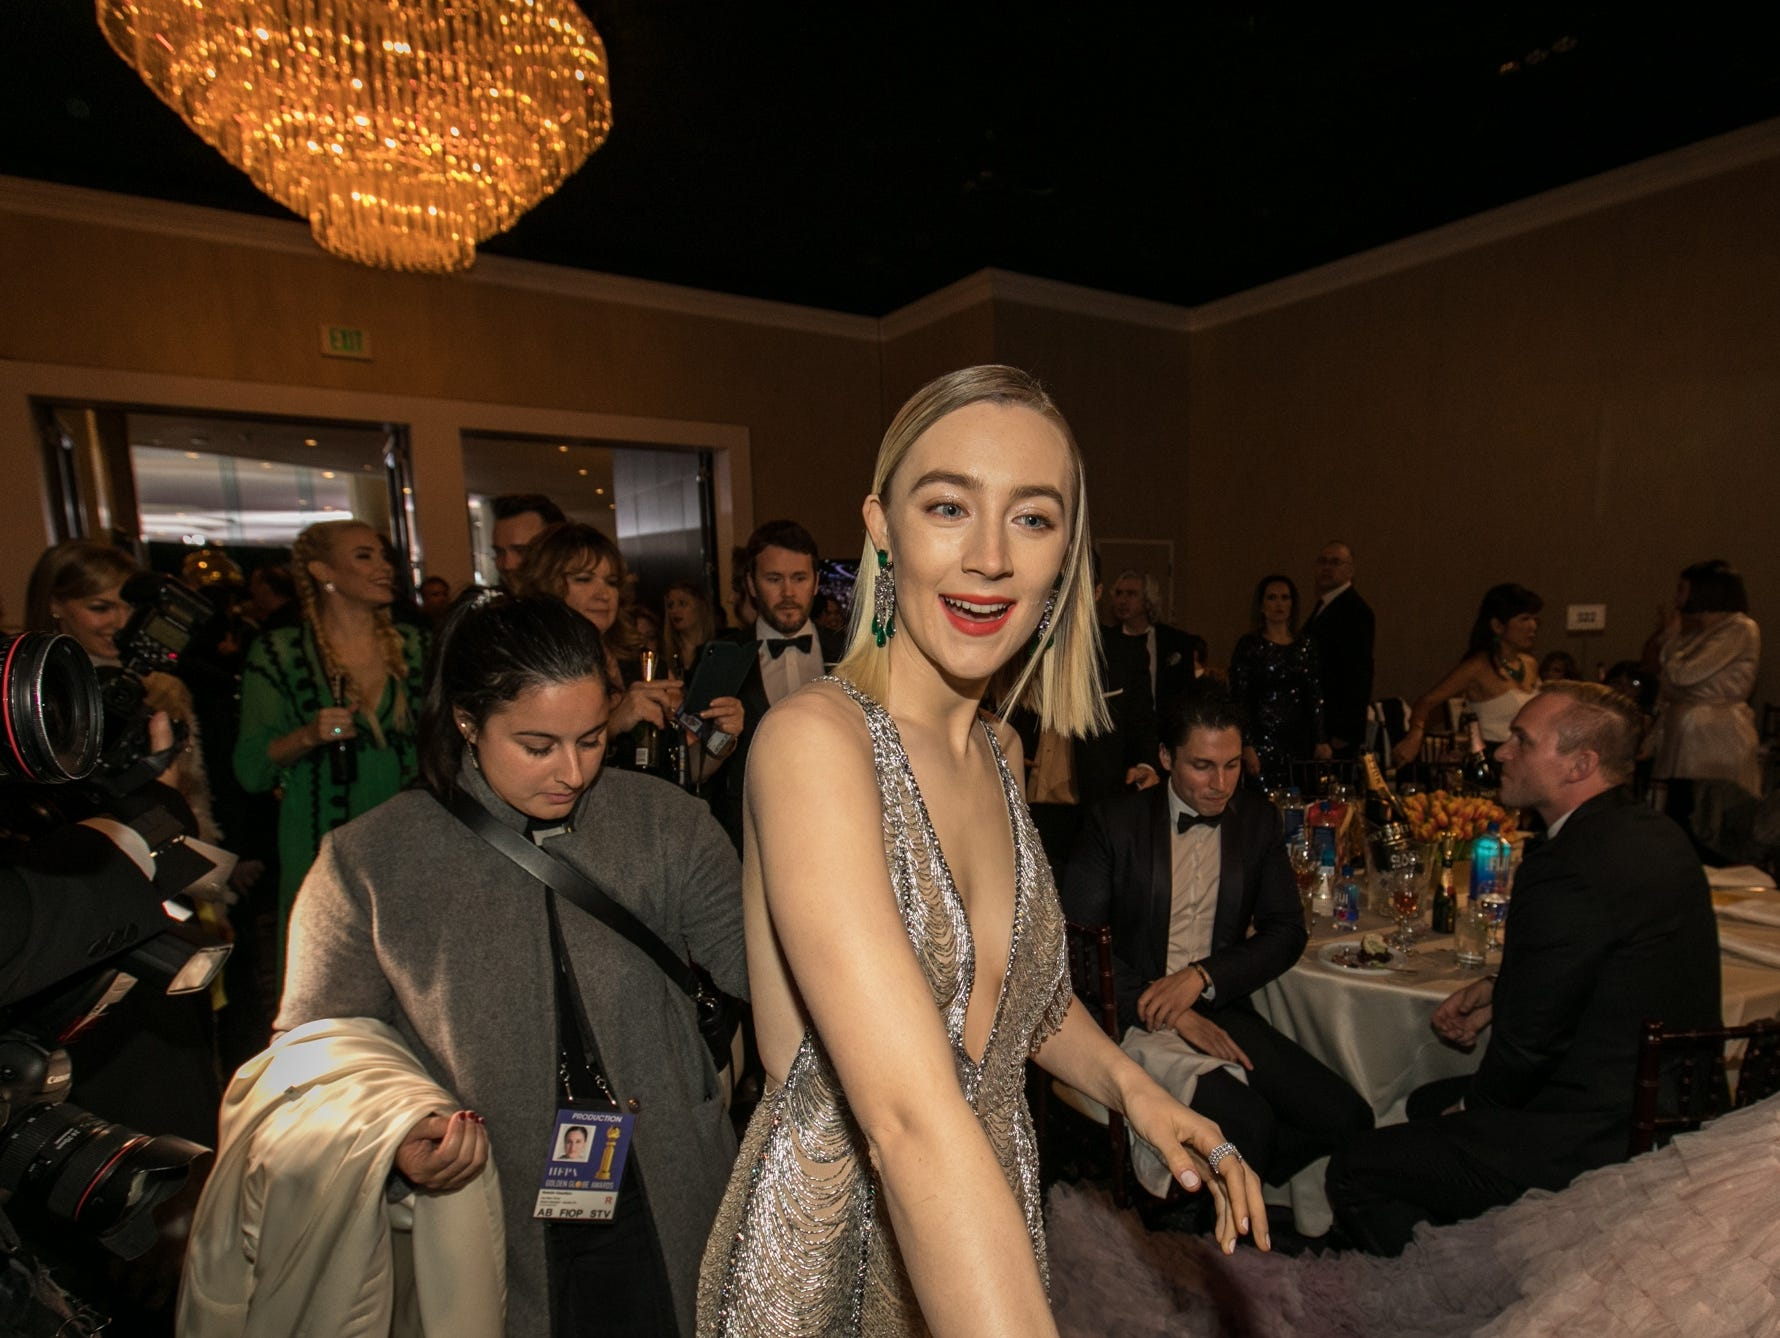 Jan 6, 2019; Beverly Hills, CA, USA; Saoirse Ronan arrives during the 76th Golden Globe Awards in the International Ballroom at the Beverly Hilton. Mandatory Credit: David Sprague-USA TODAY (Via OlyDrop)